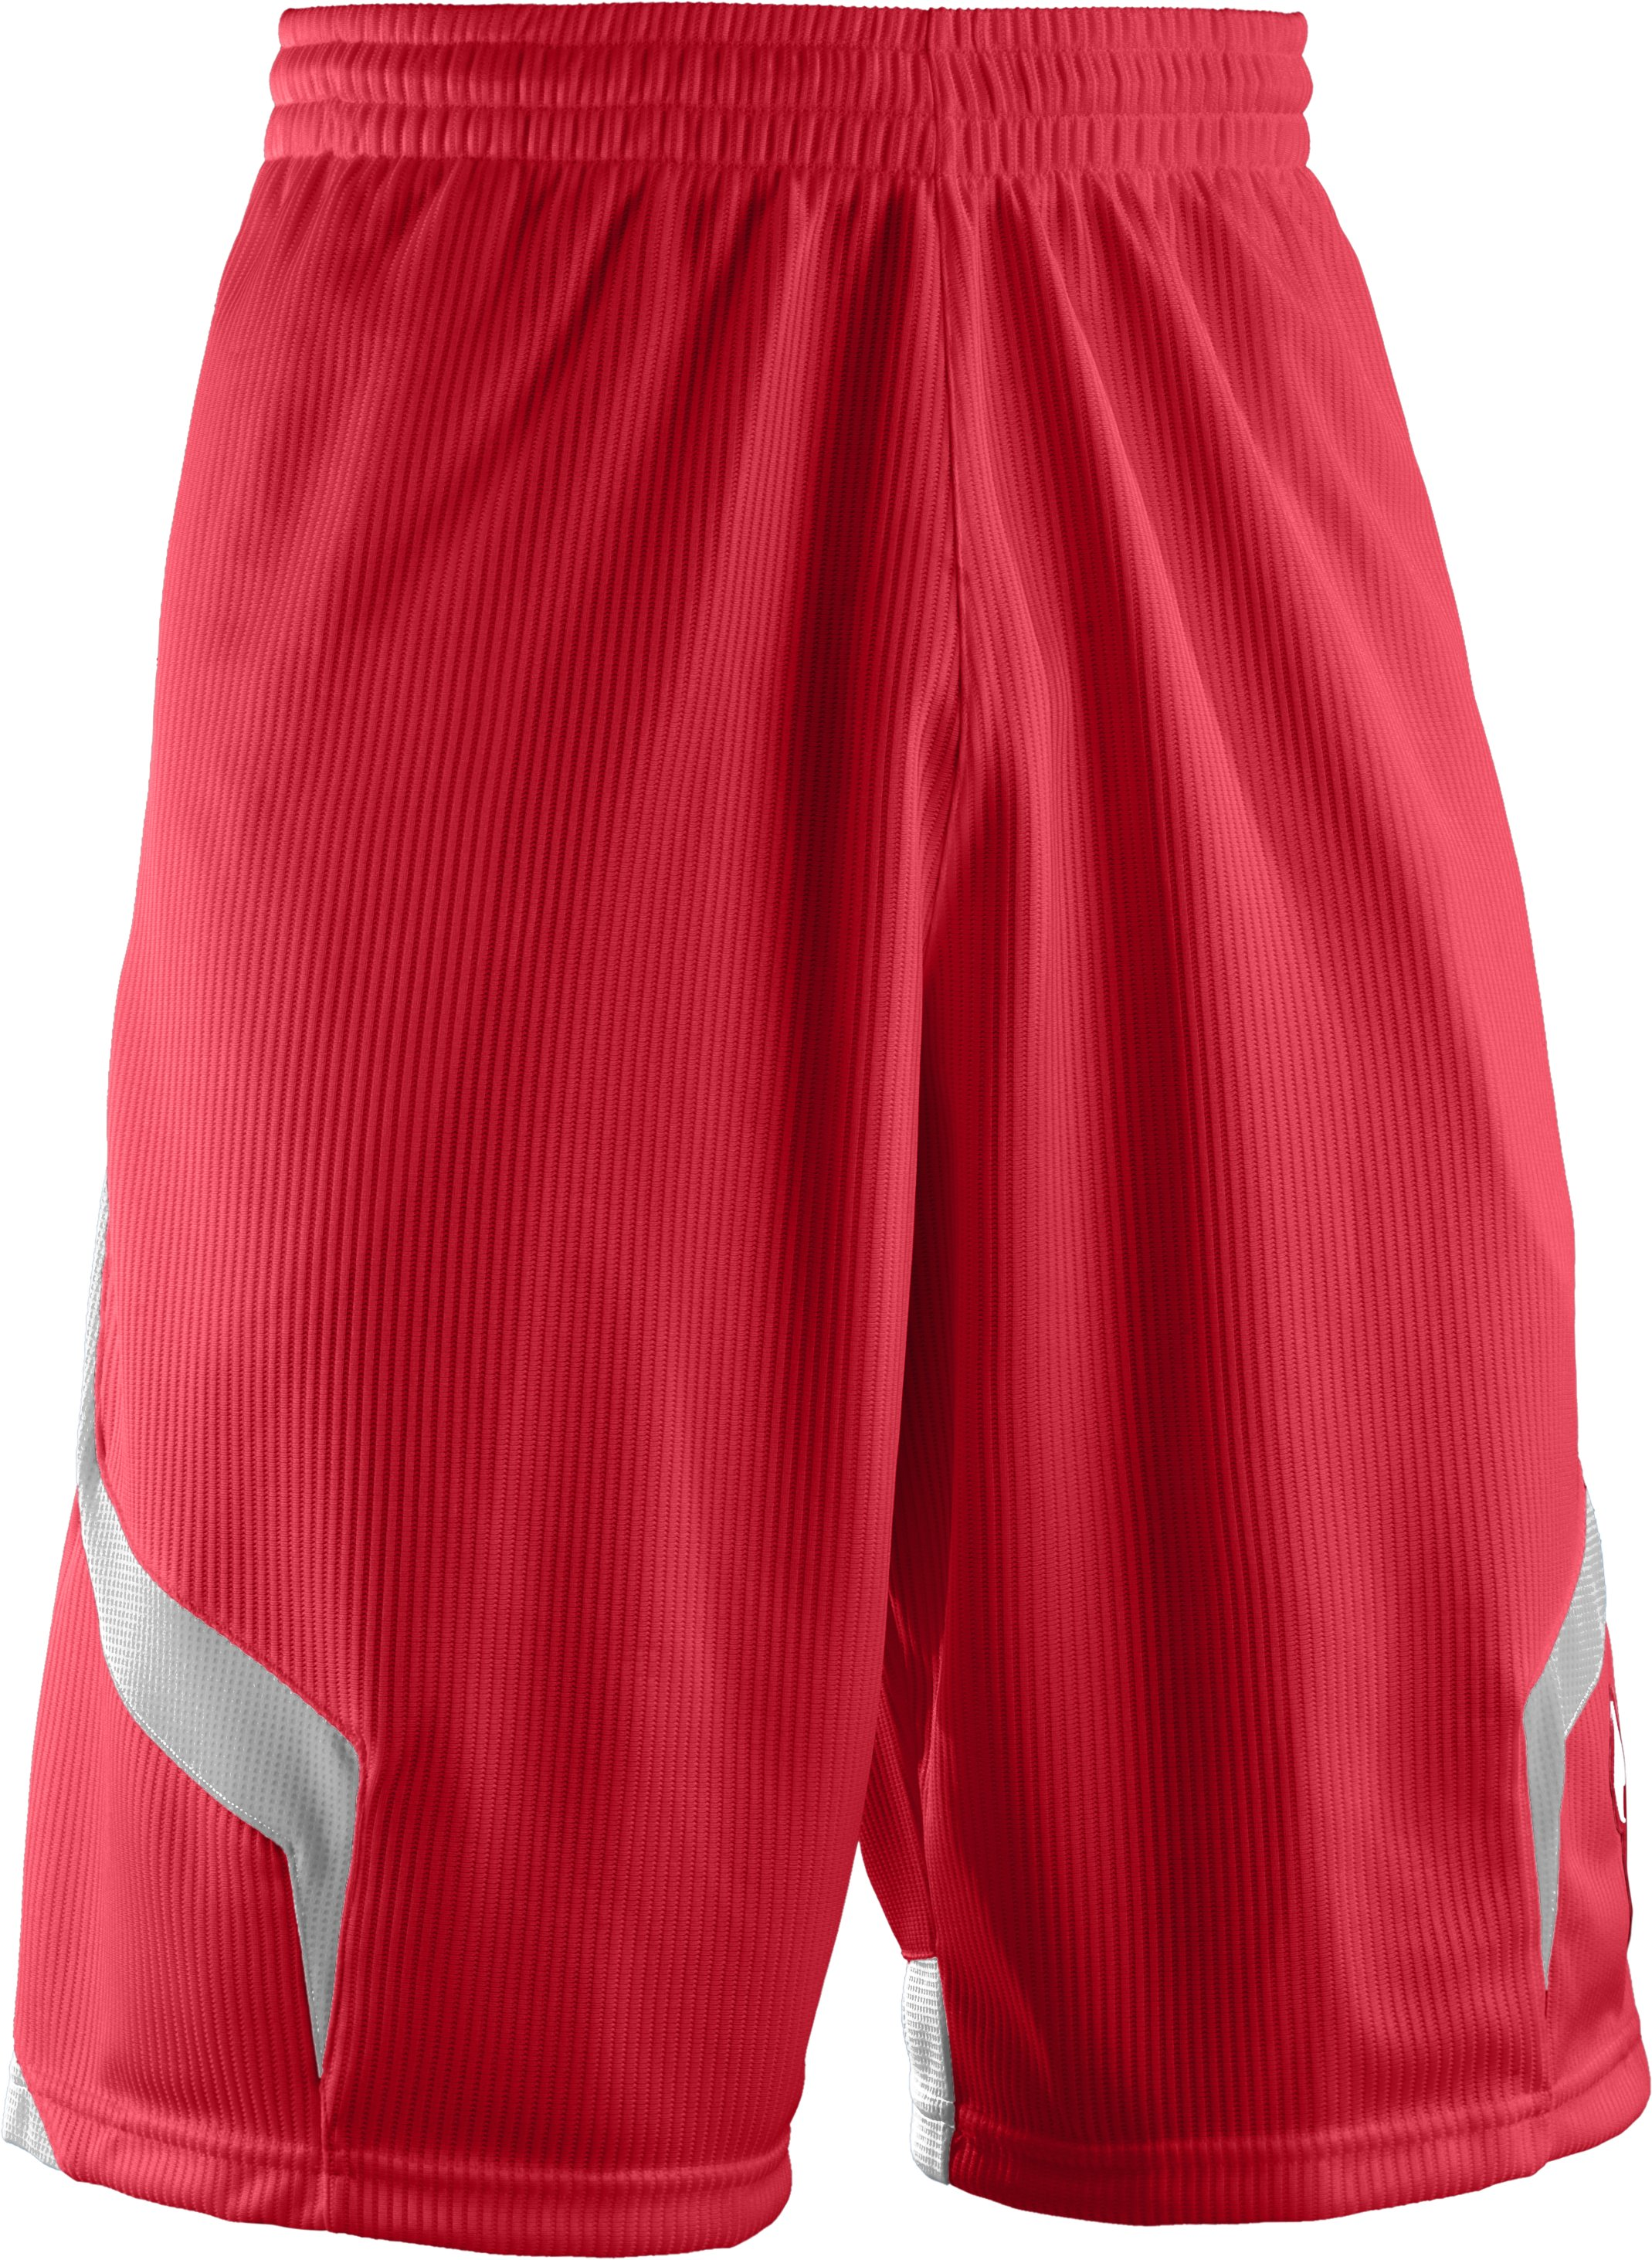 "Men's UA Valkyrie 12"" Basketball Short, Red, undefined"